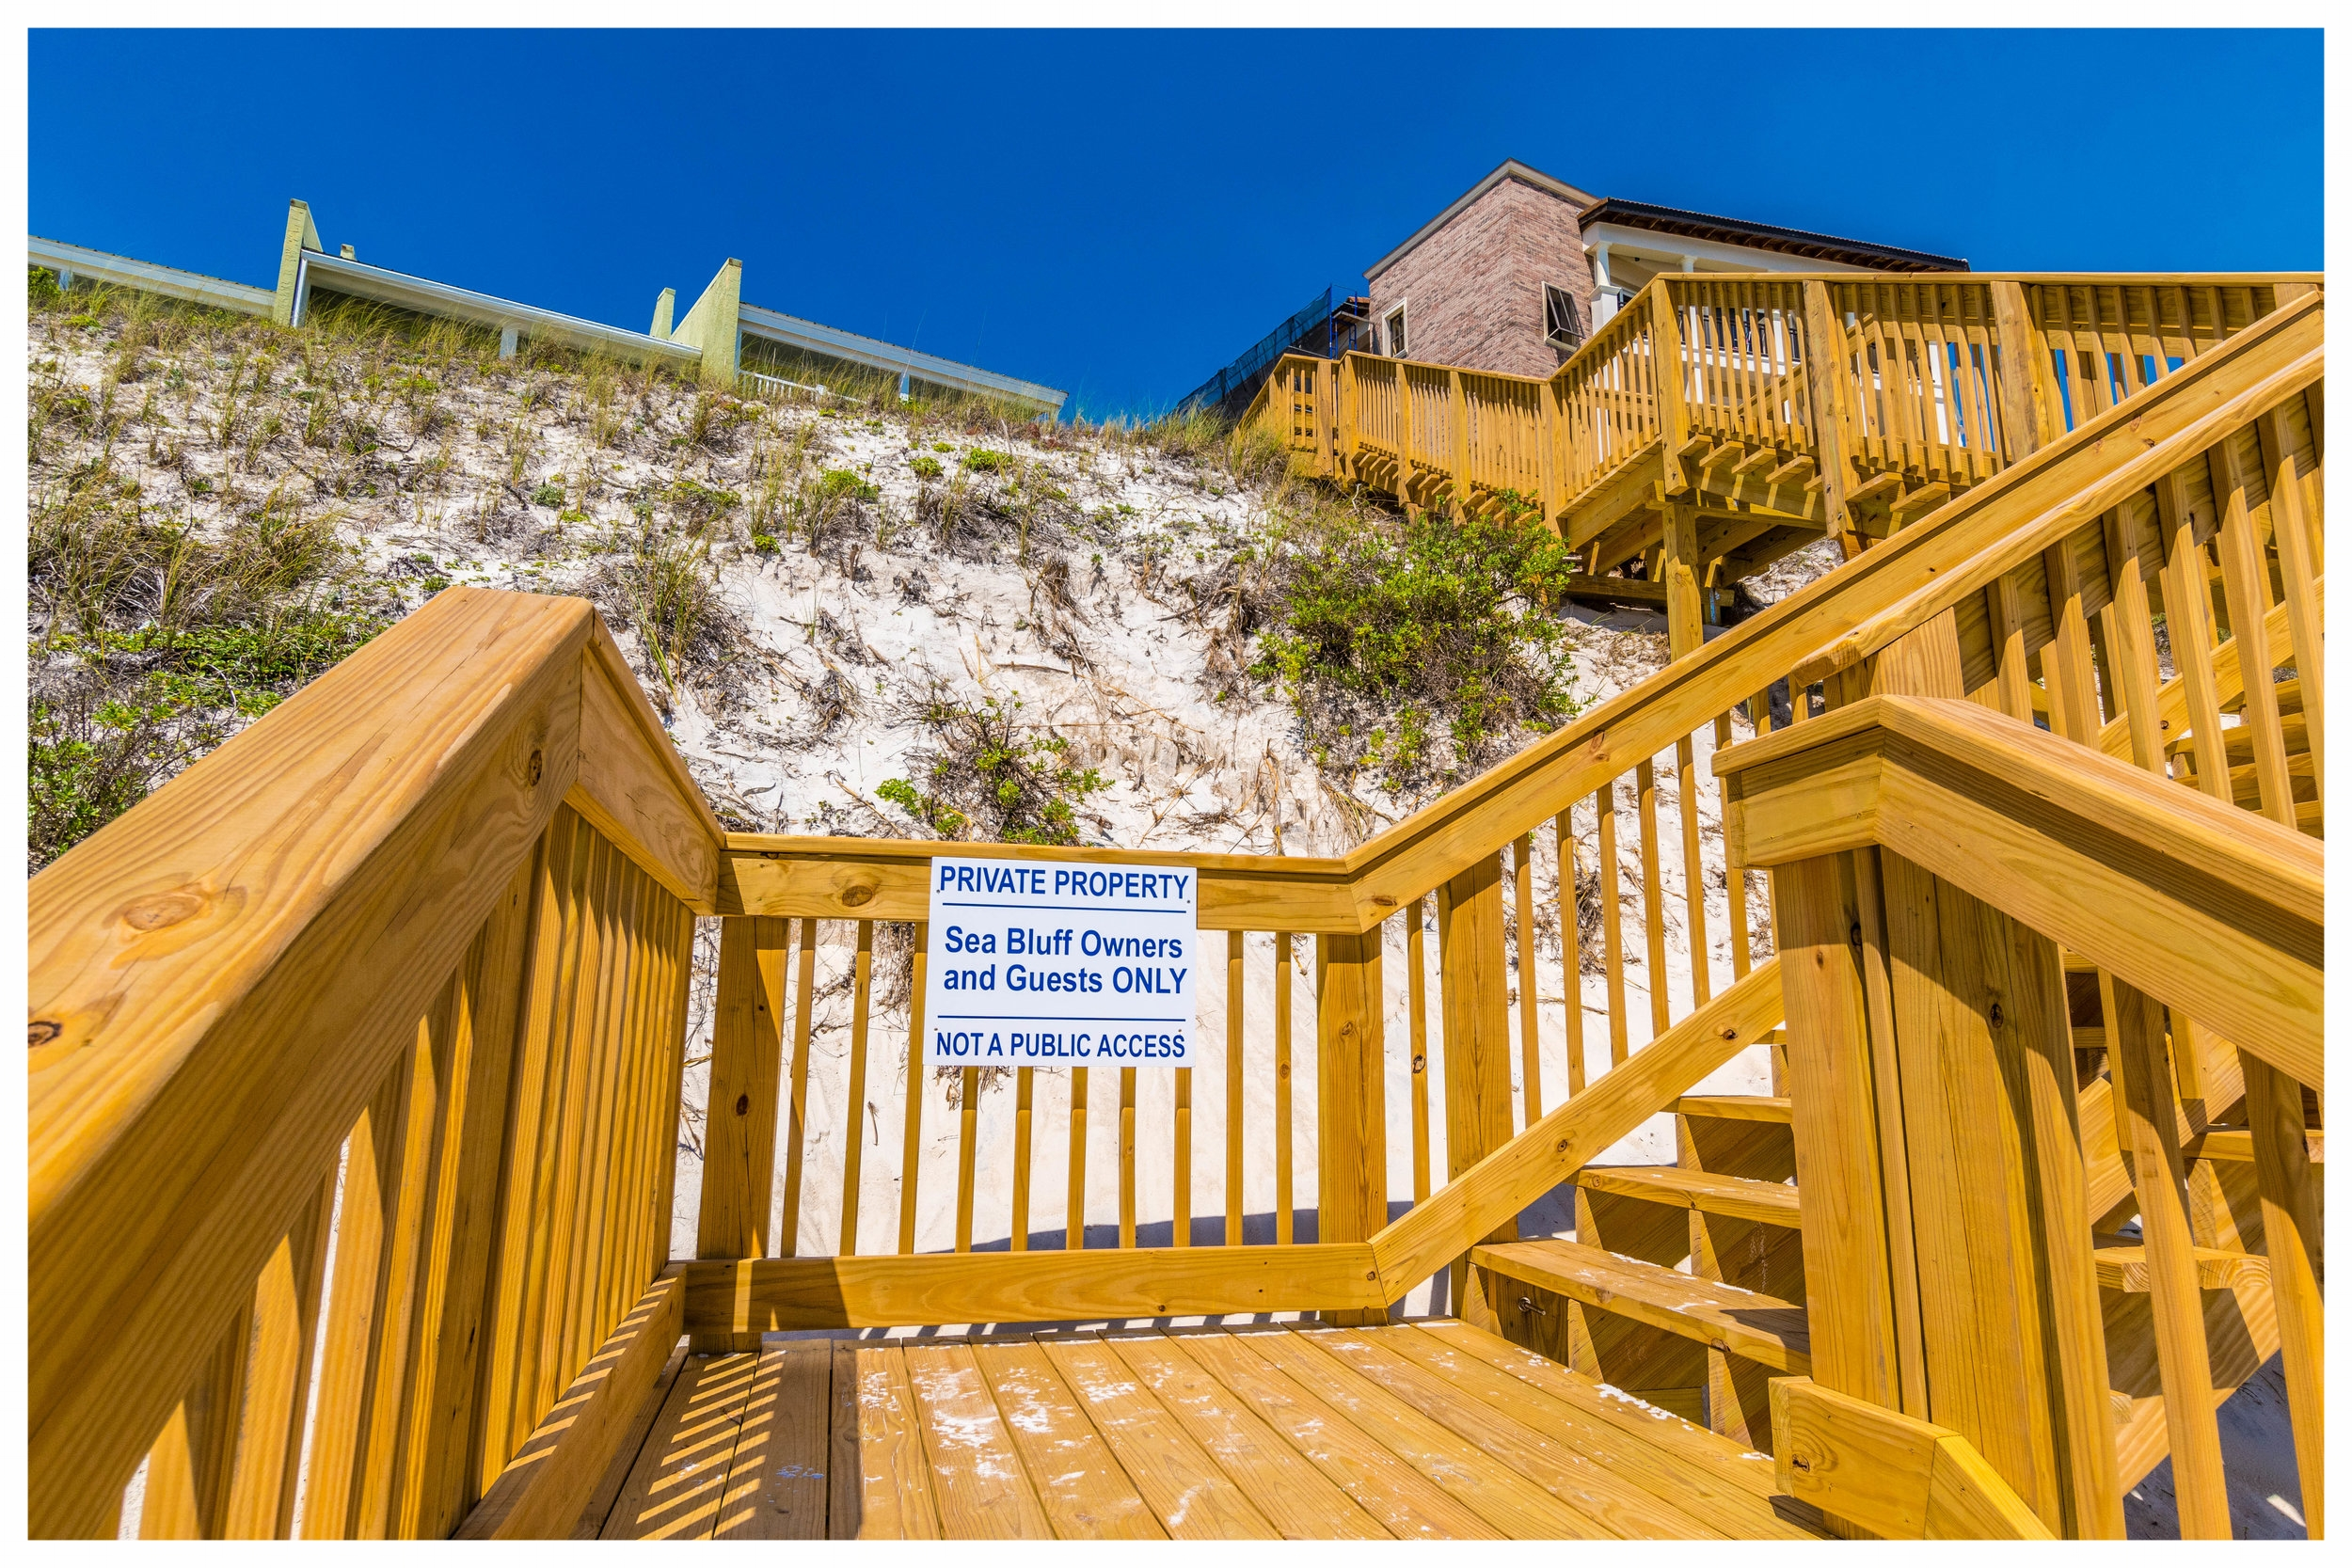 Boardwalk Design and Construction